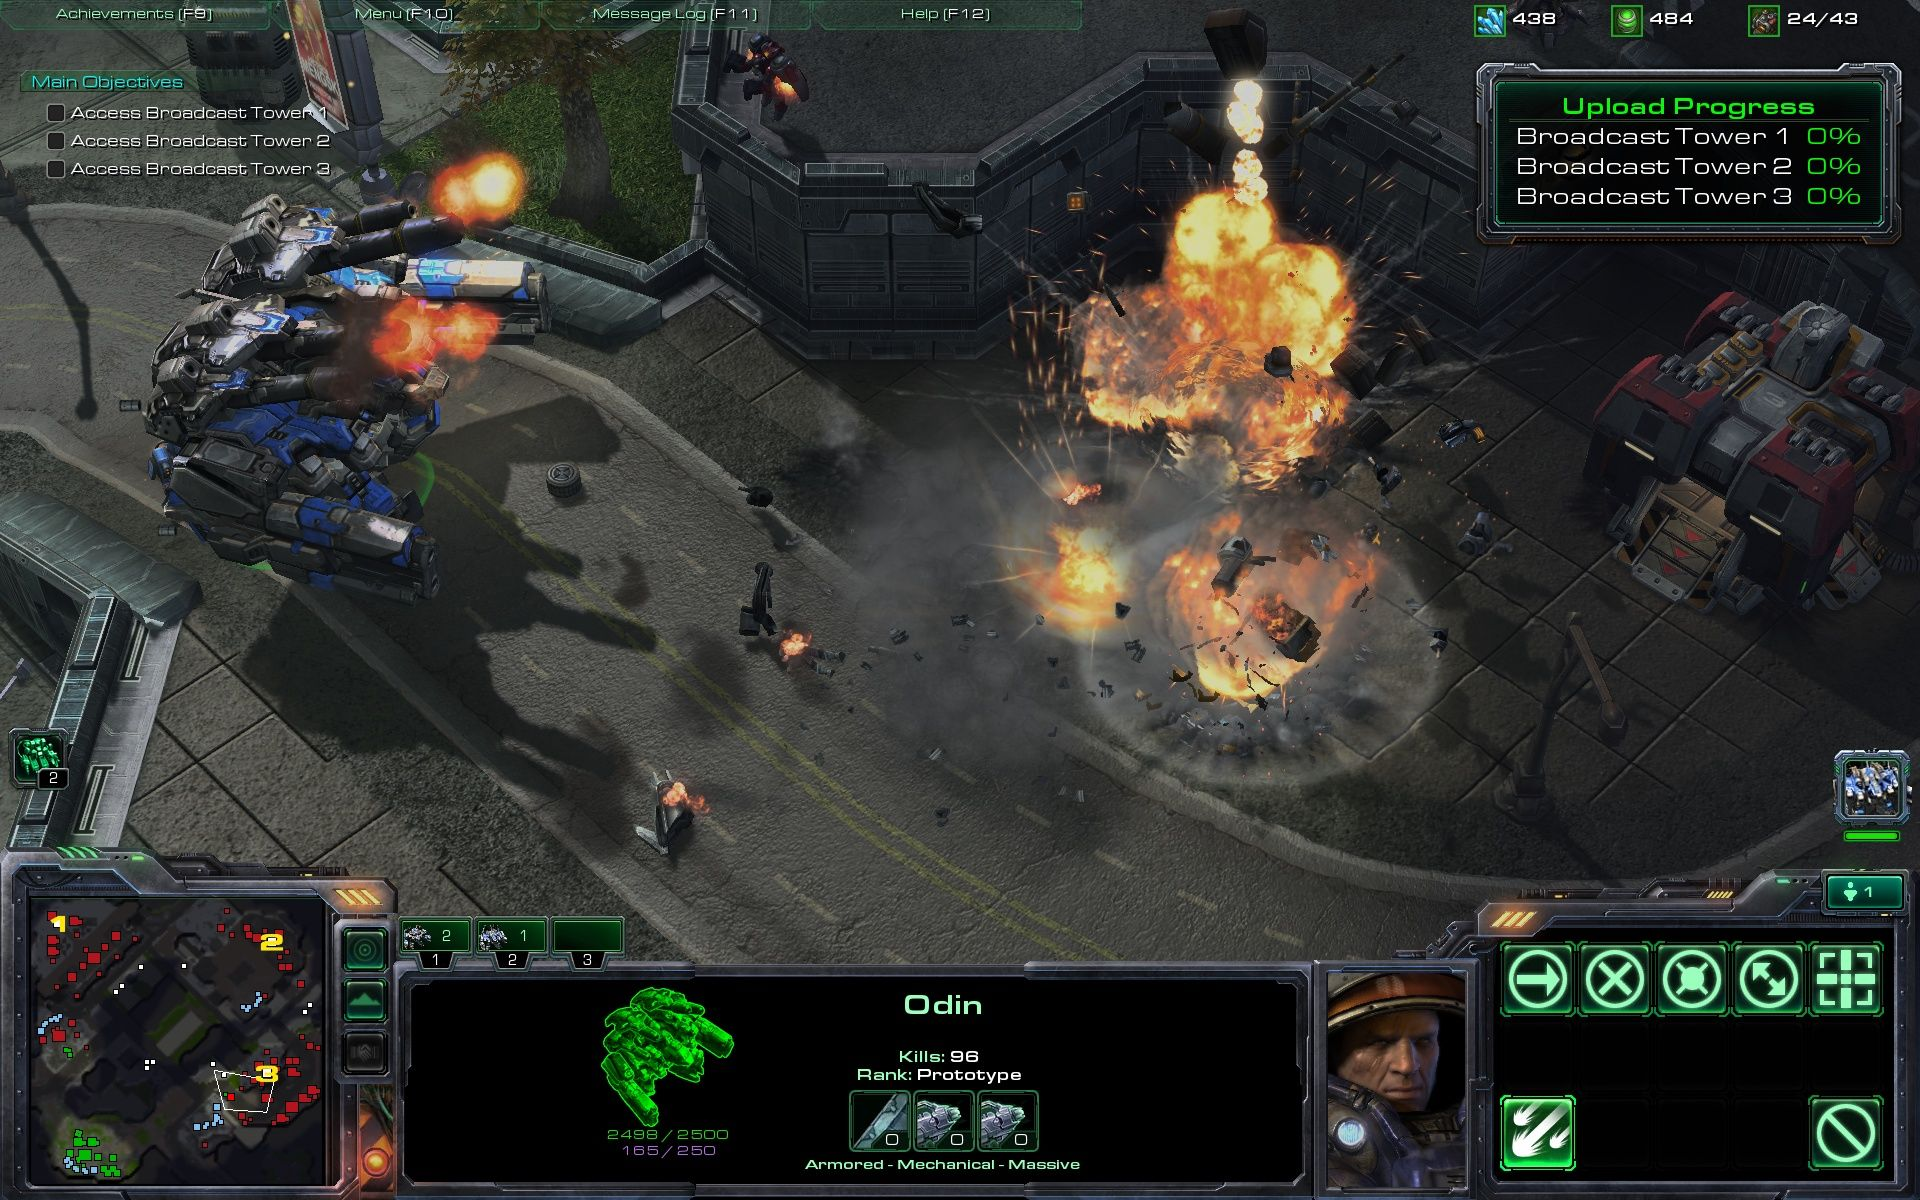 StarCraft II: Wings of Liberty Windows Odin is a very powerful unit which can destroy almost anything in a matter of seconds.